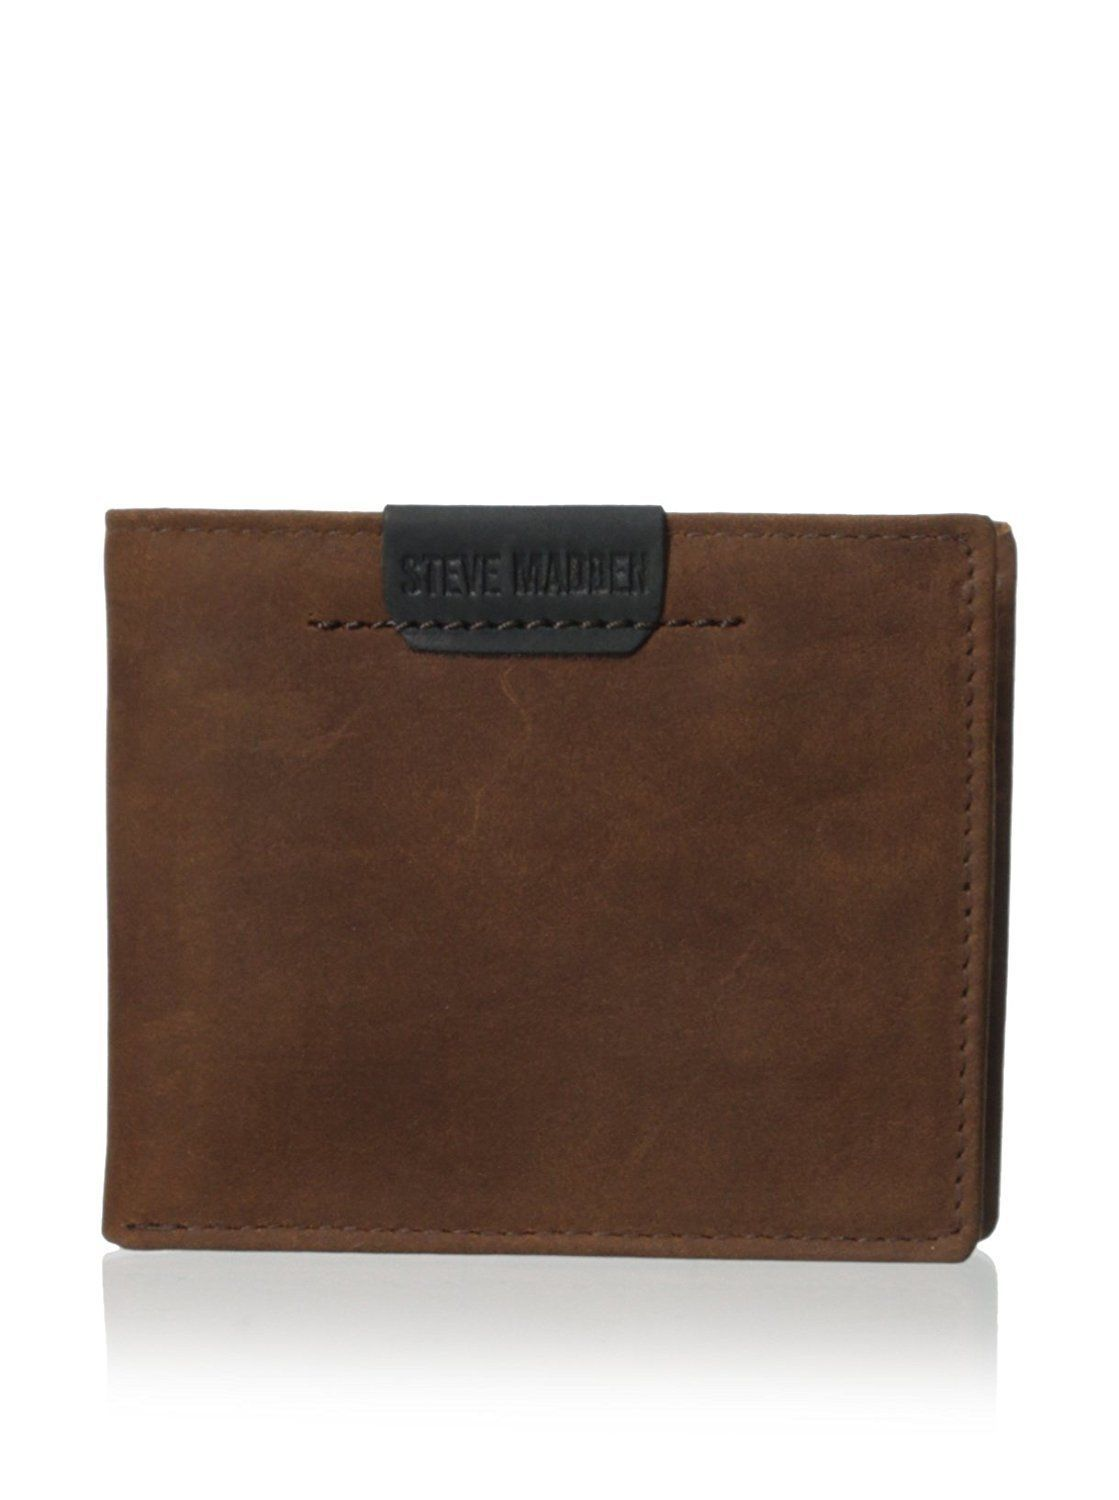 NEW STEVE MADDEN MEN'S PREMIUM LEATHER CREDIT CARD ID WALLET BROWN N80007/01